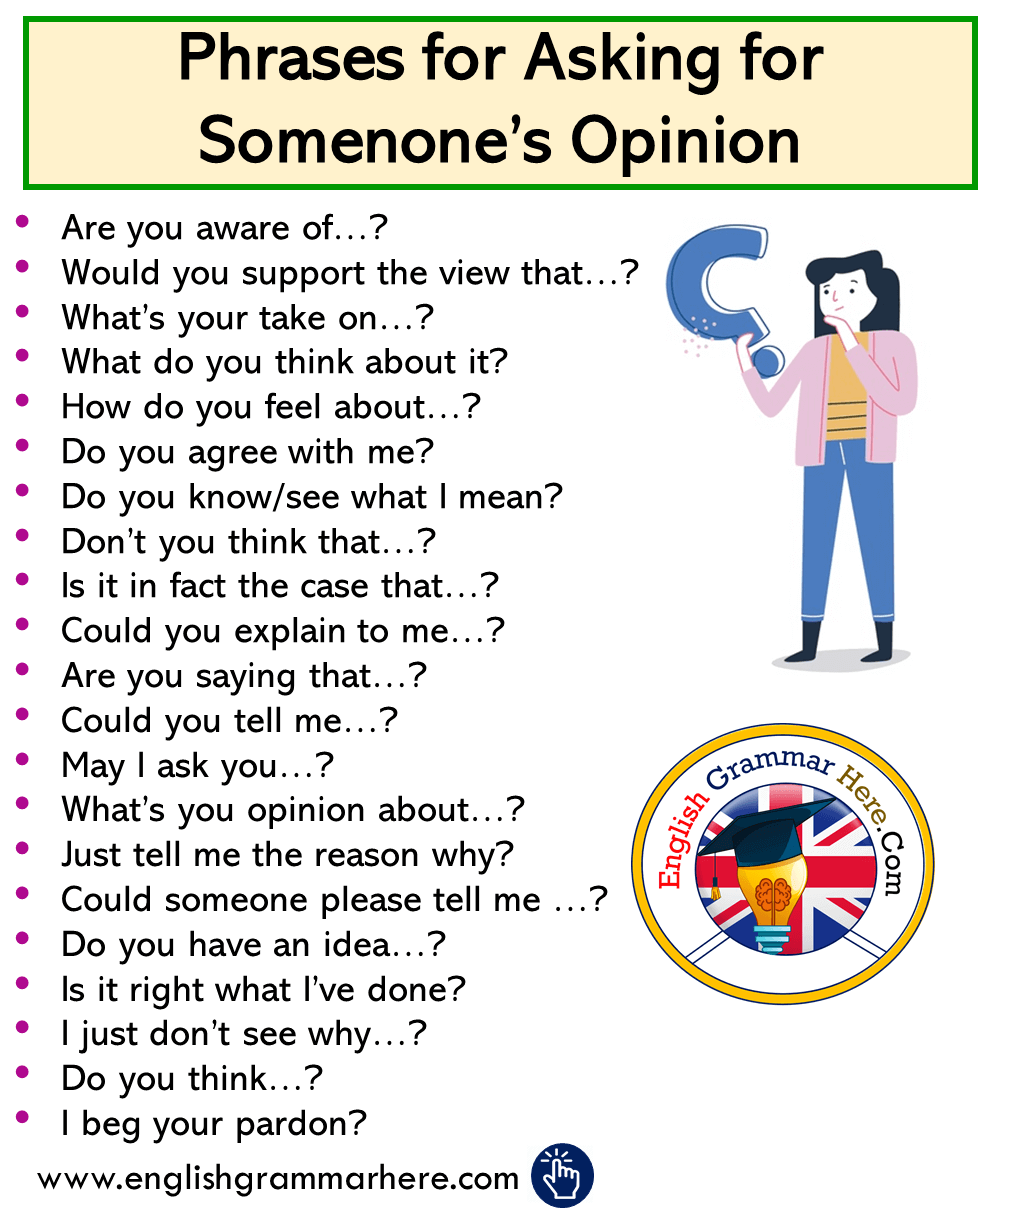 Phrases for Asking for Somenone's Opinion